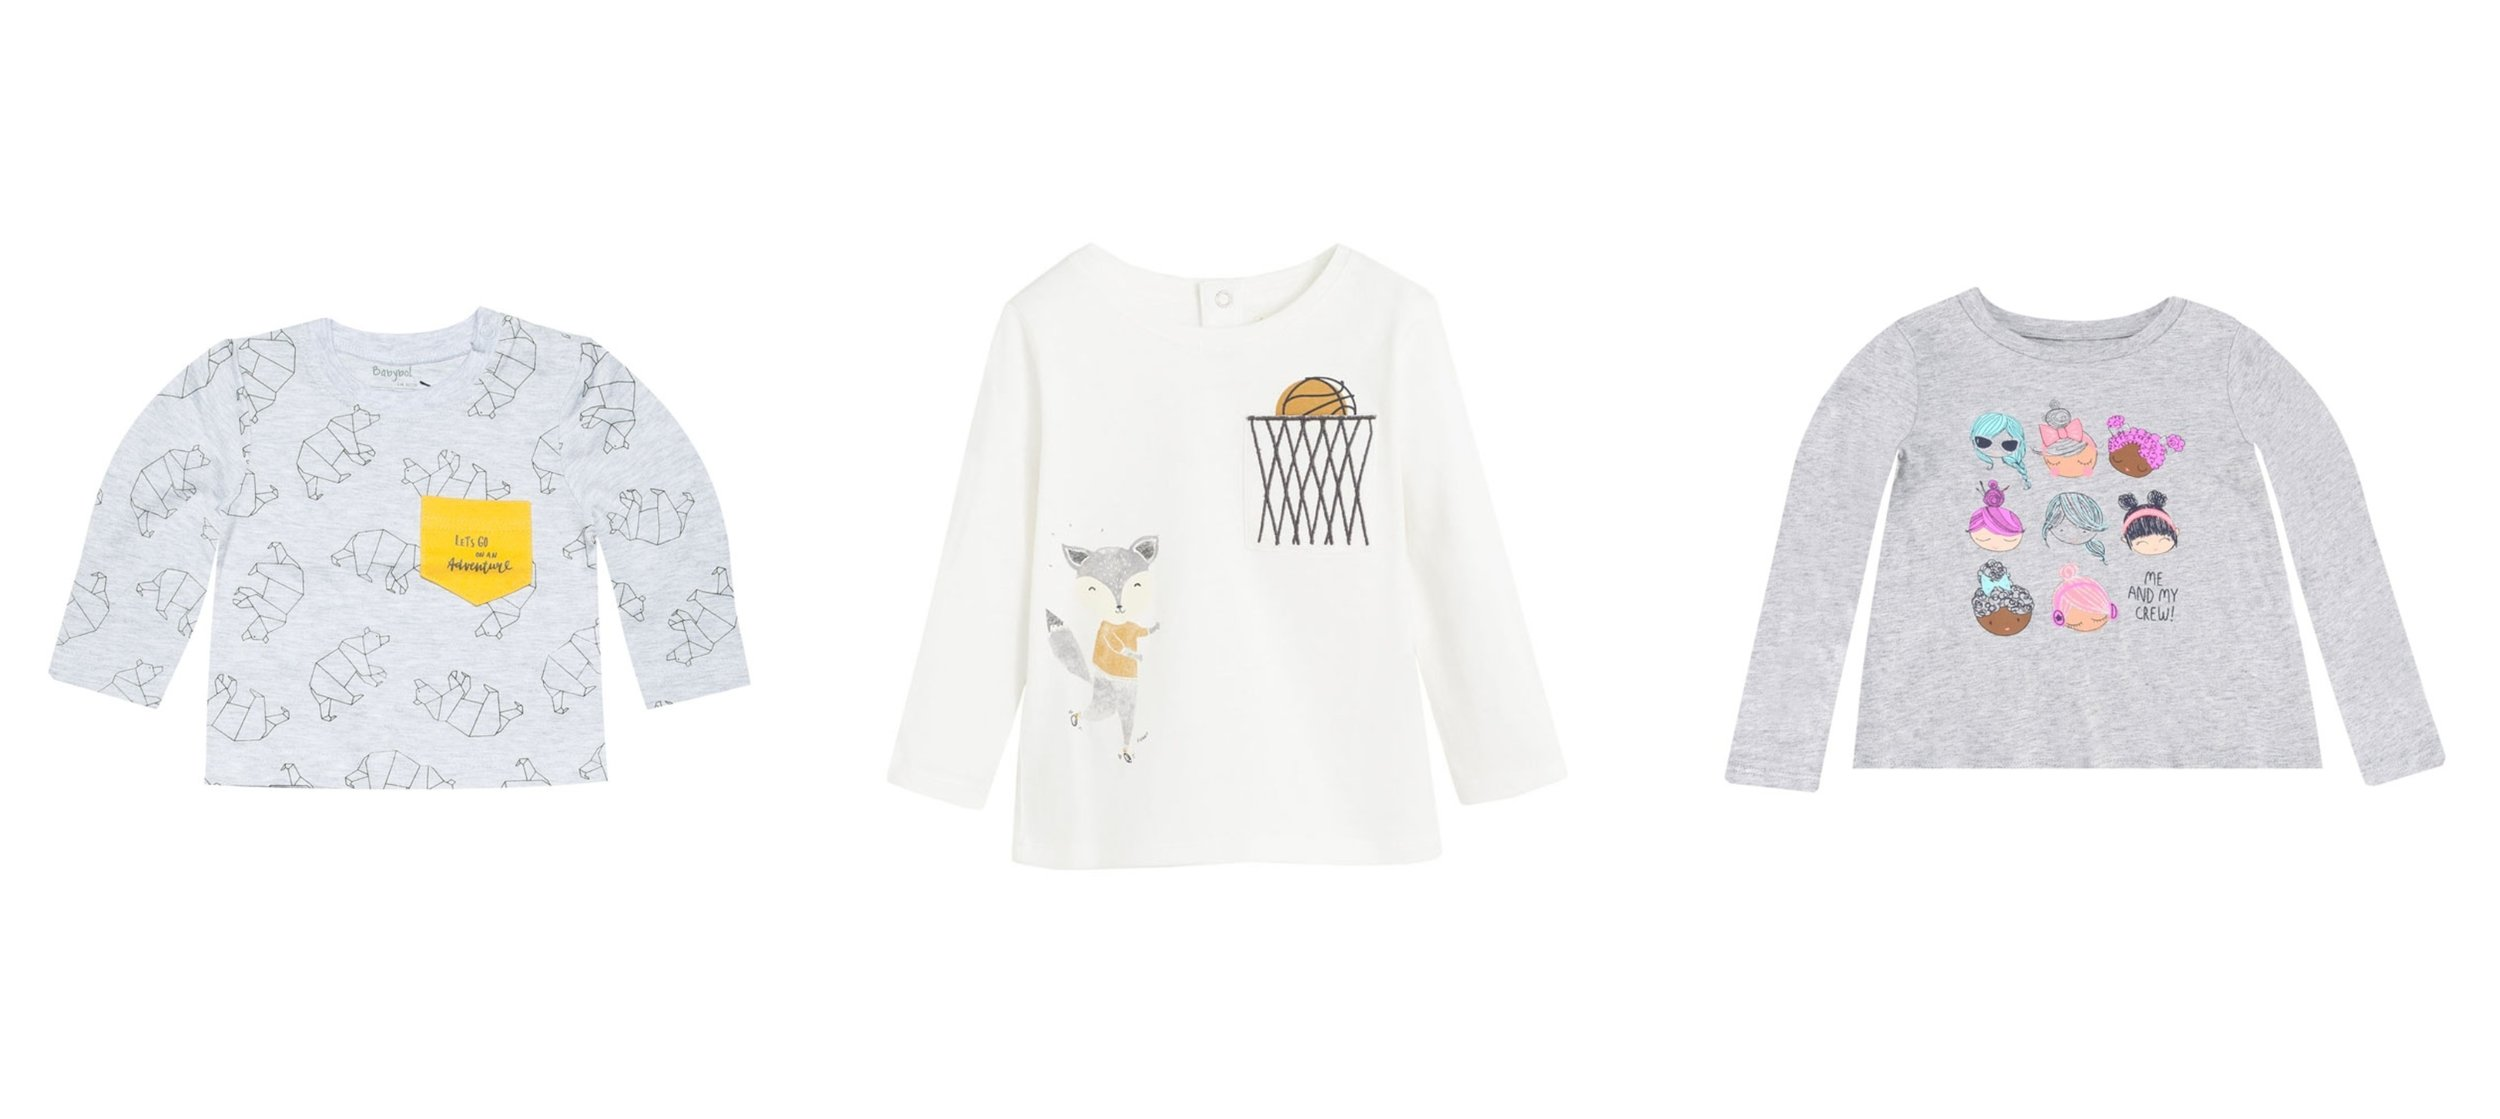 Babybol Polar Bear T-Shirt, Mango Baby Embroidered Chest-Pocket T-Shirt, GAP Long Sleeve Graphic Top